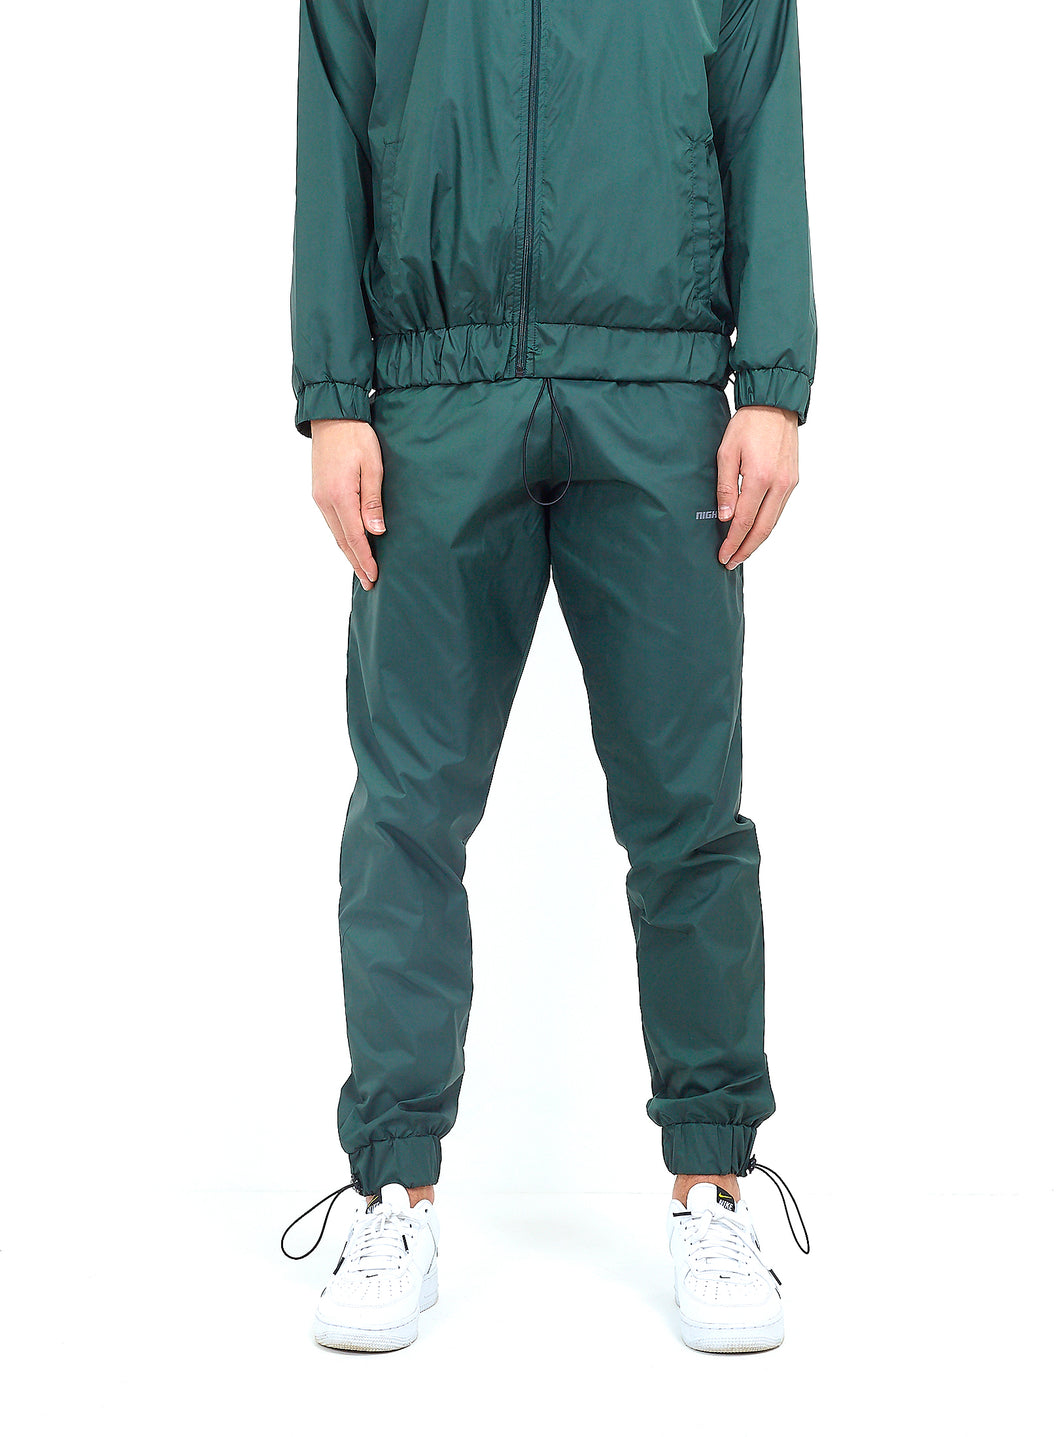 NYLON LOGO TRACK PANTS - GREEN